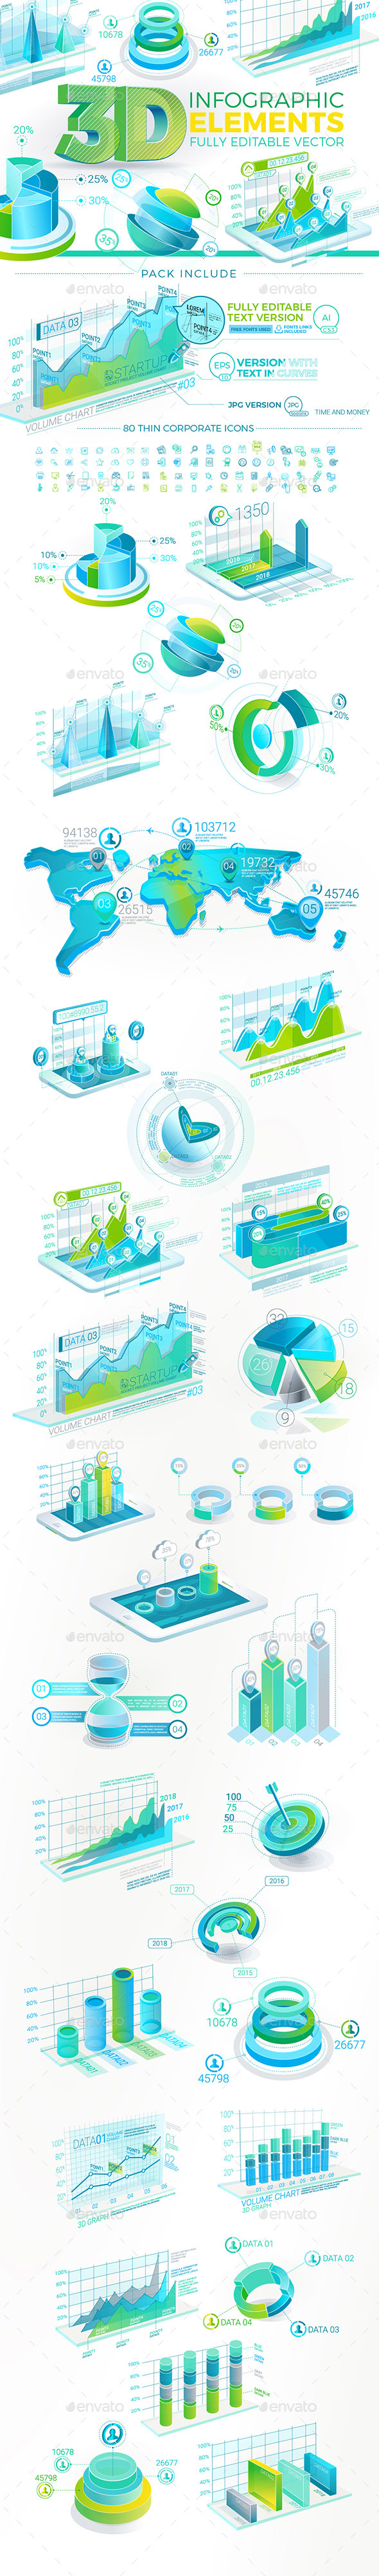 3D Corporate Infographic Elements - Infographics